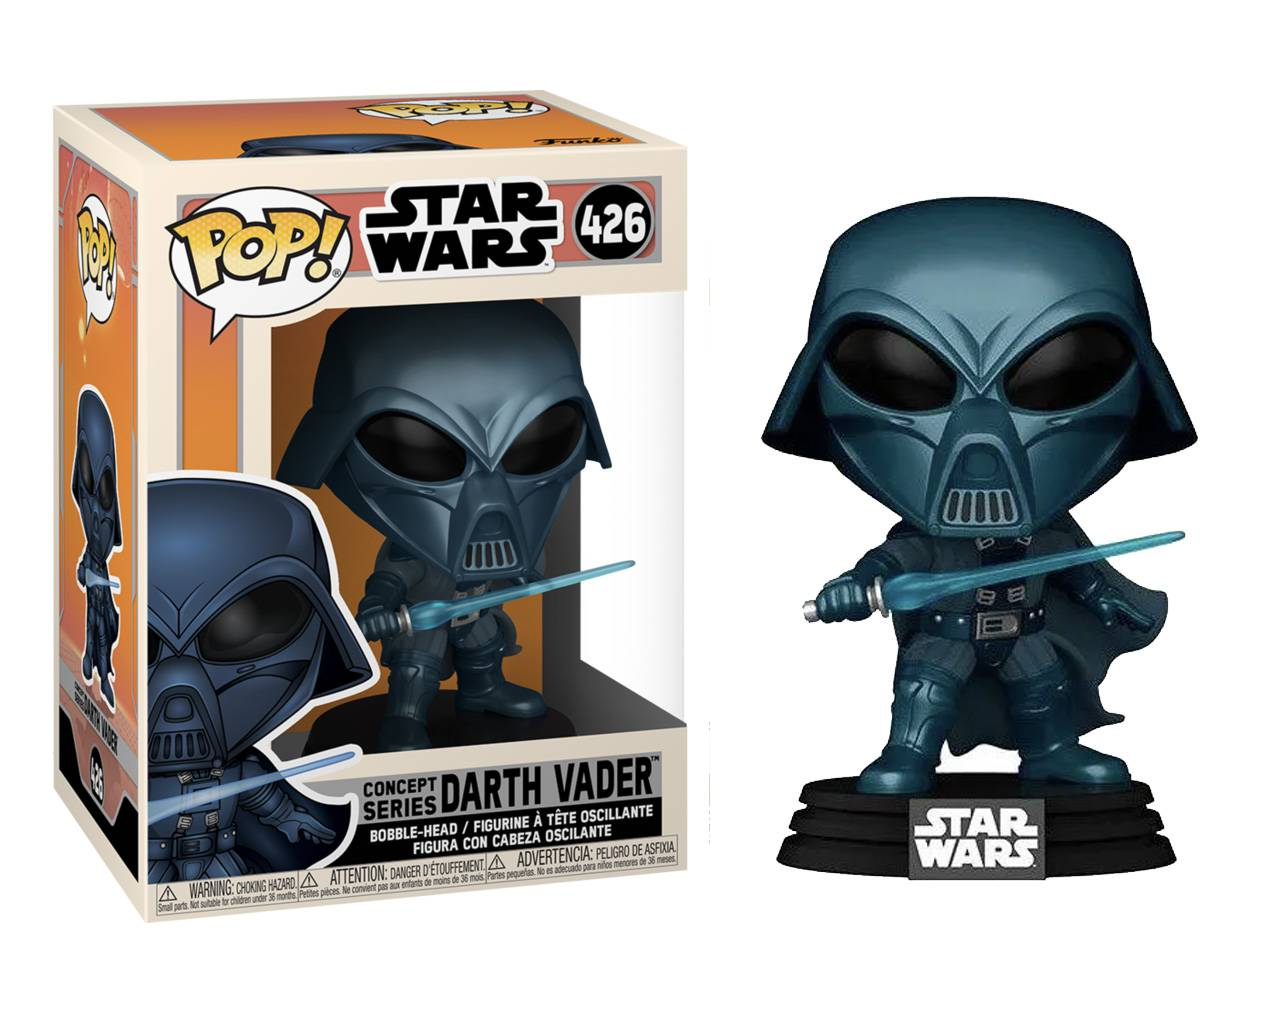 Darth Vader (Concept Series) Pop! Vinyl